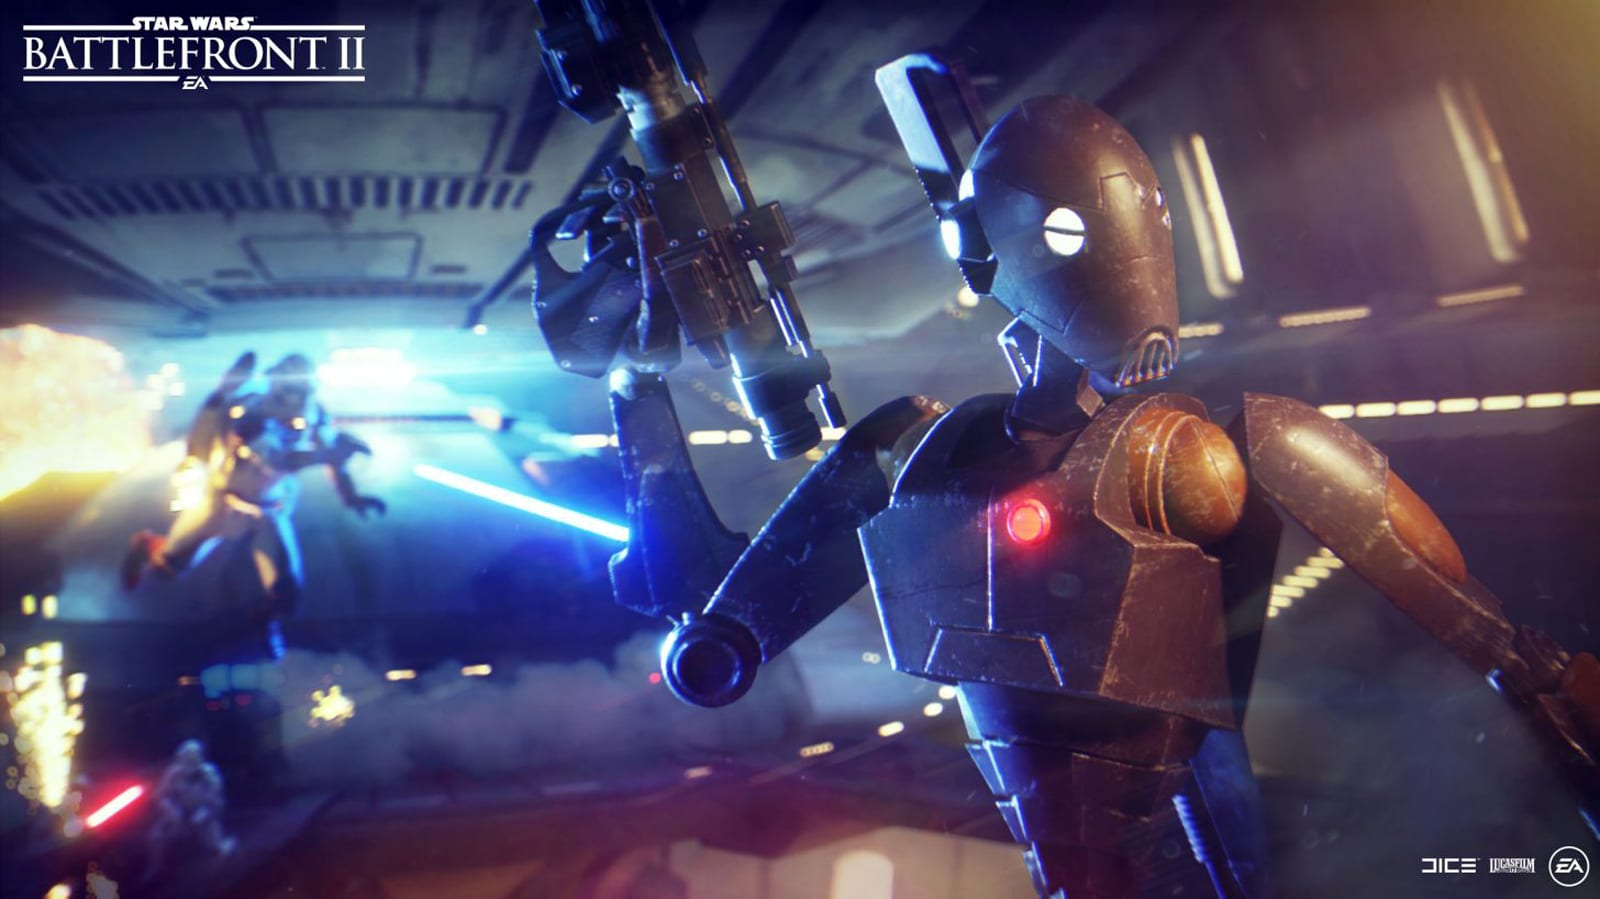 The latest 'Star Wars Battlefront II' mode mixes human and AI players